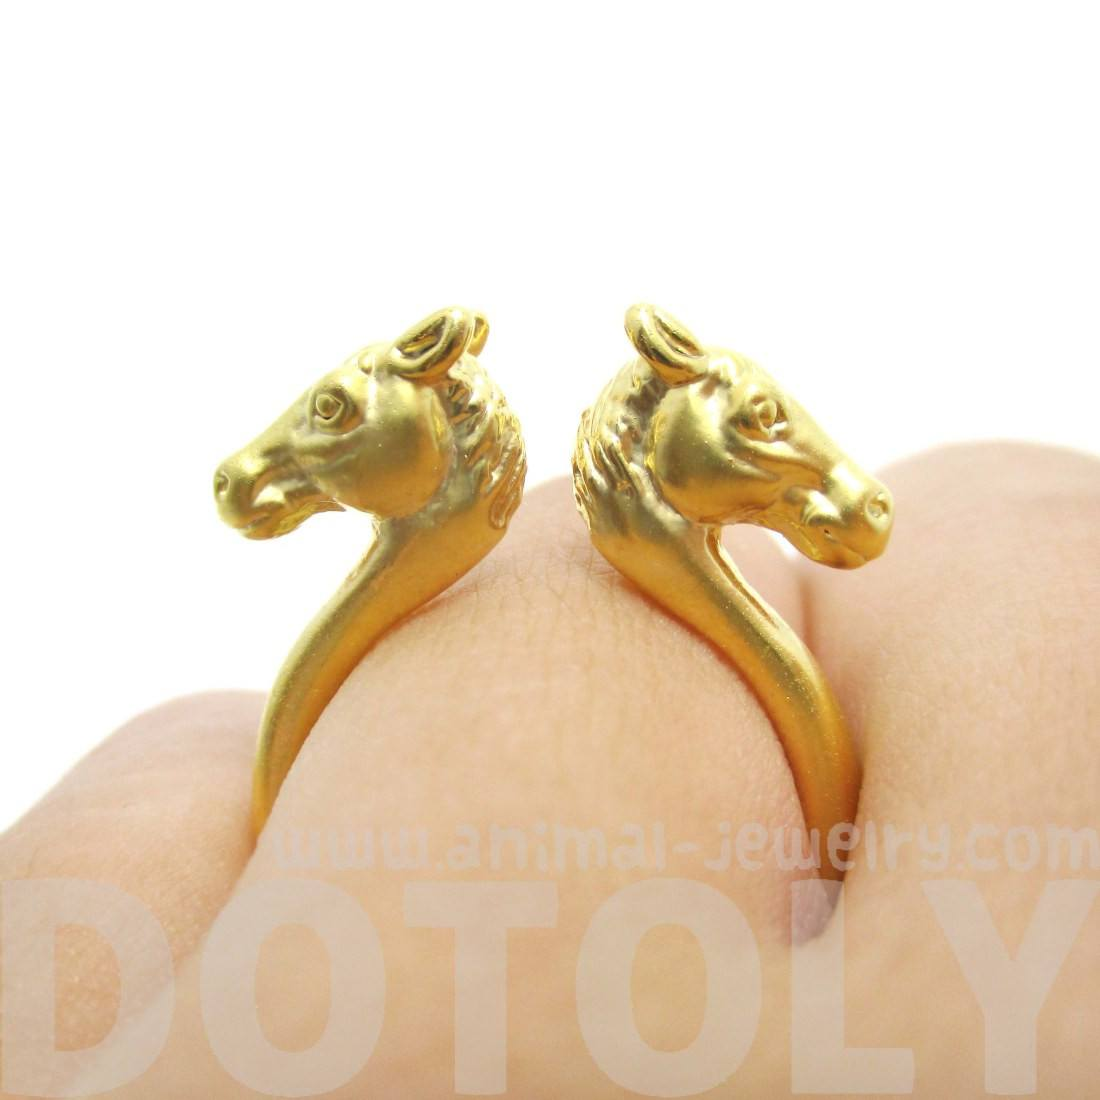 3D Double Horse Pony Head Shaped Sleek Ring in Gold